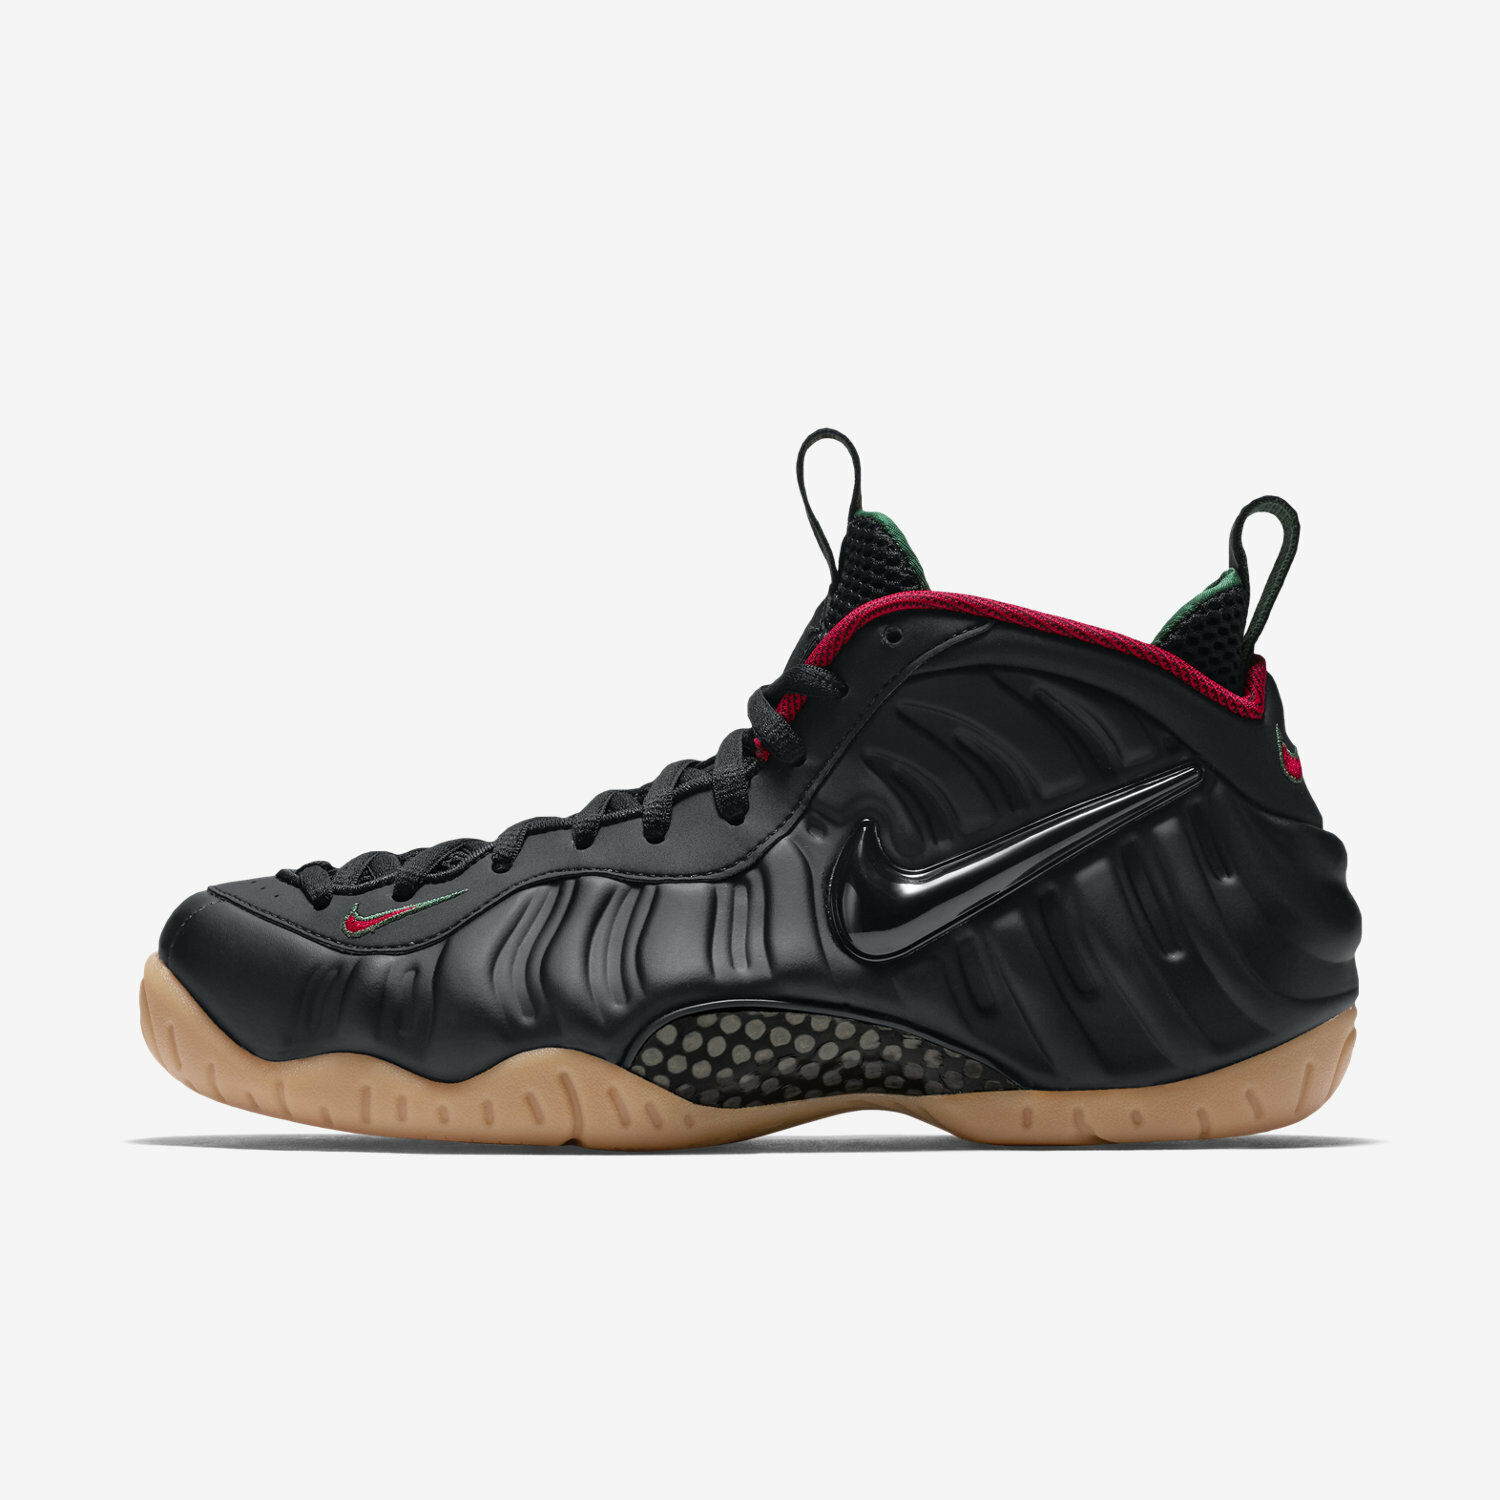 Nike Air Foamposite Pro Men's Basketball Shoe - Black Red Green 624041-004